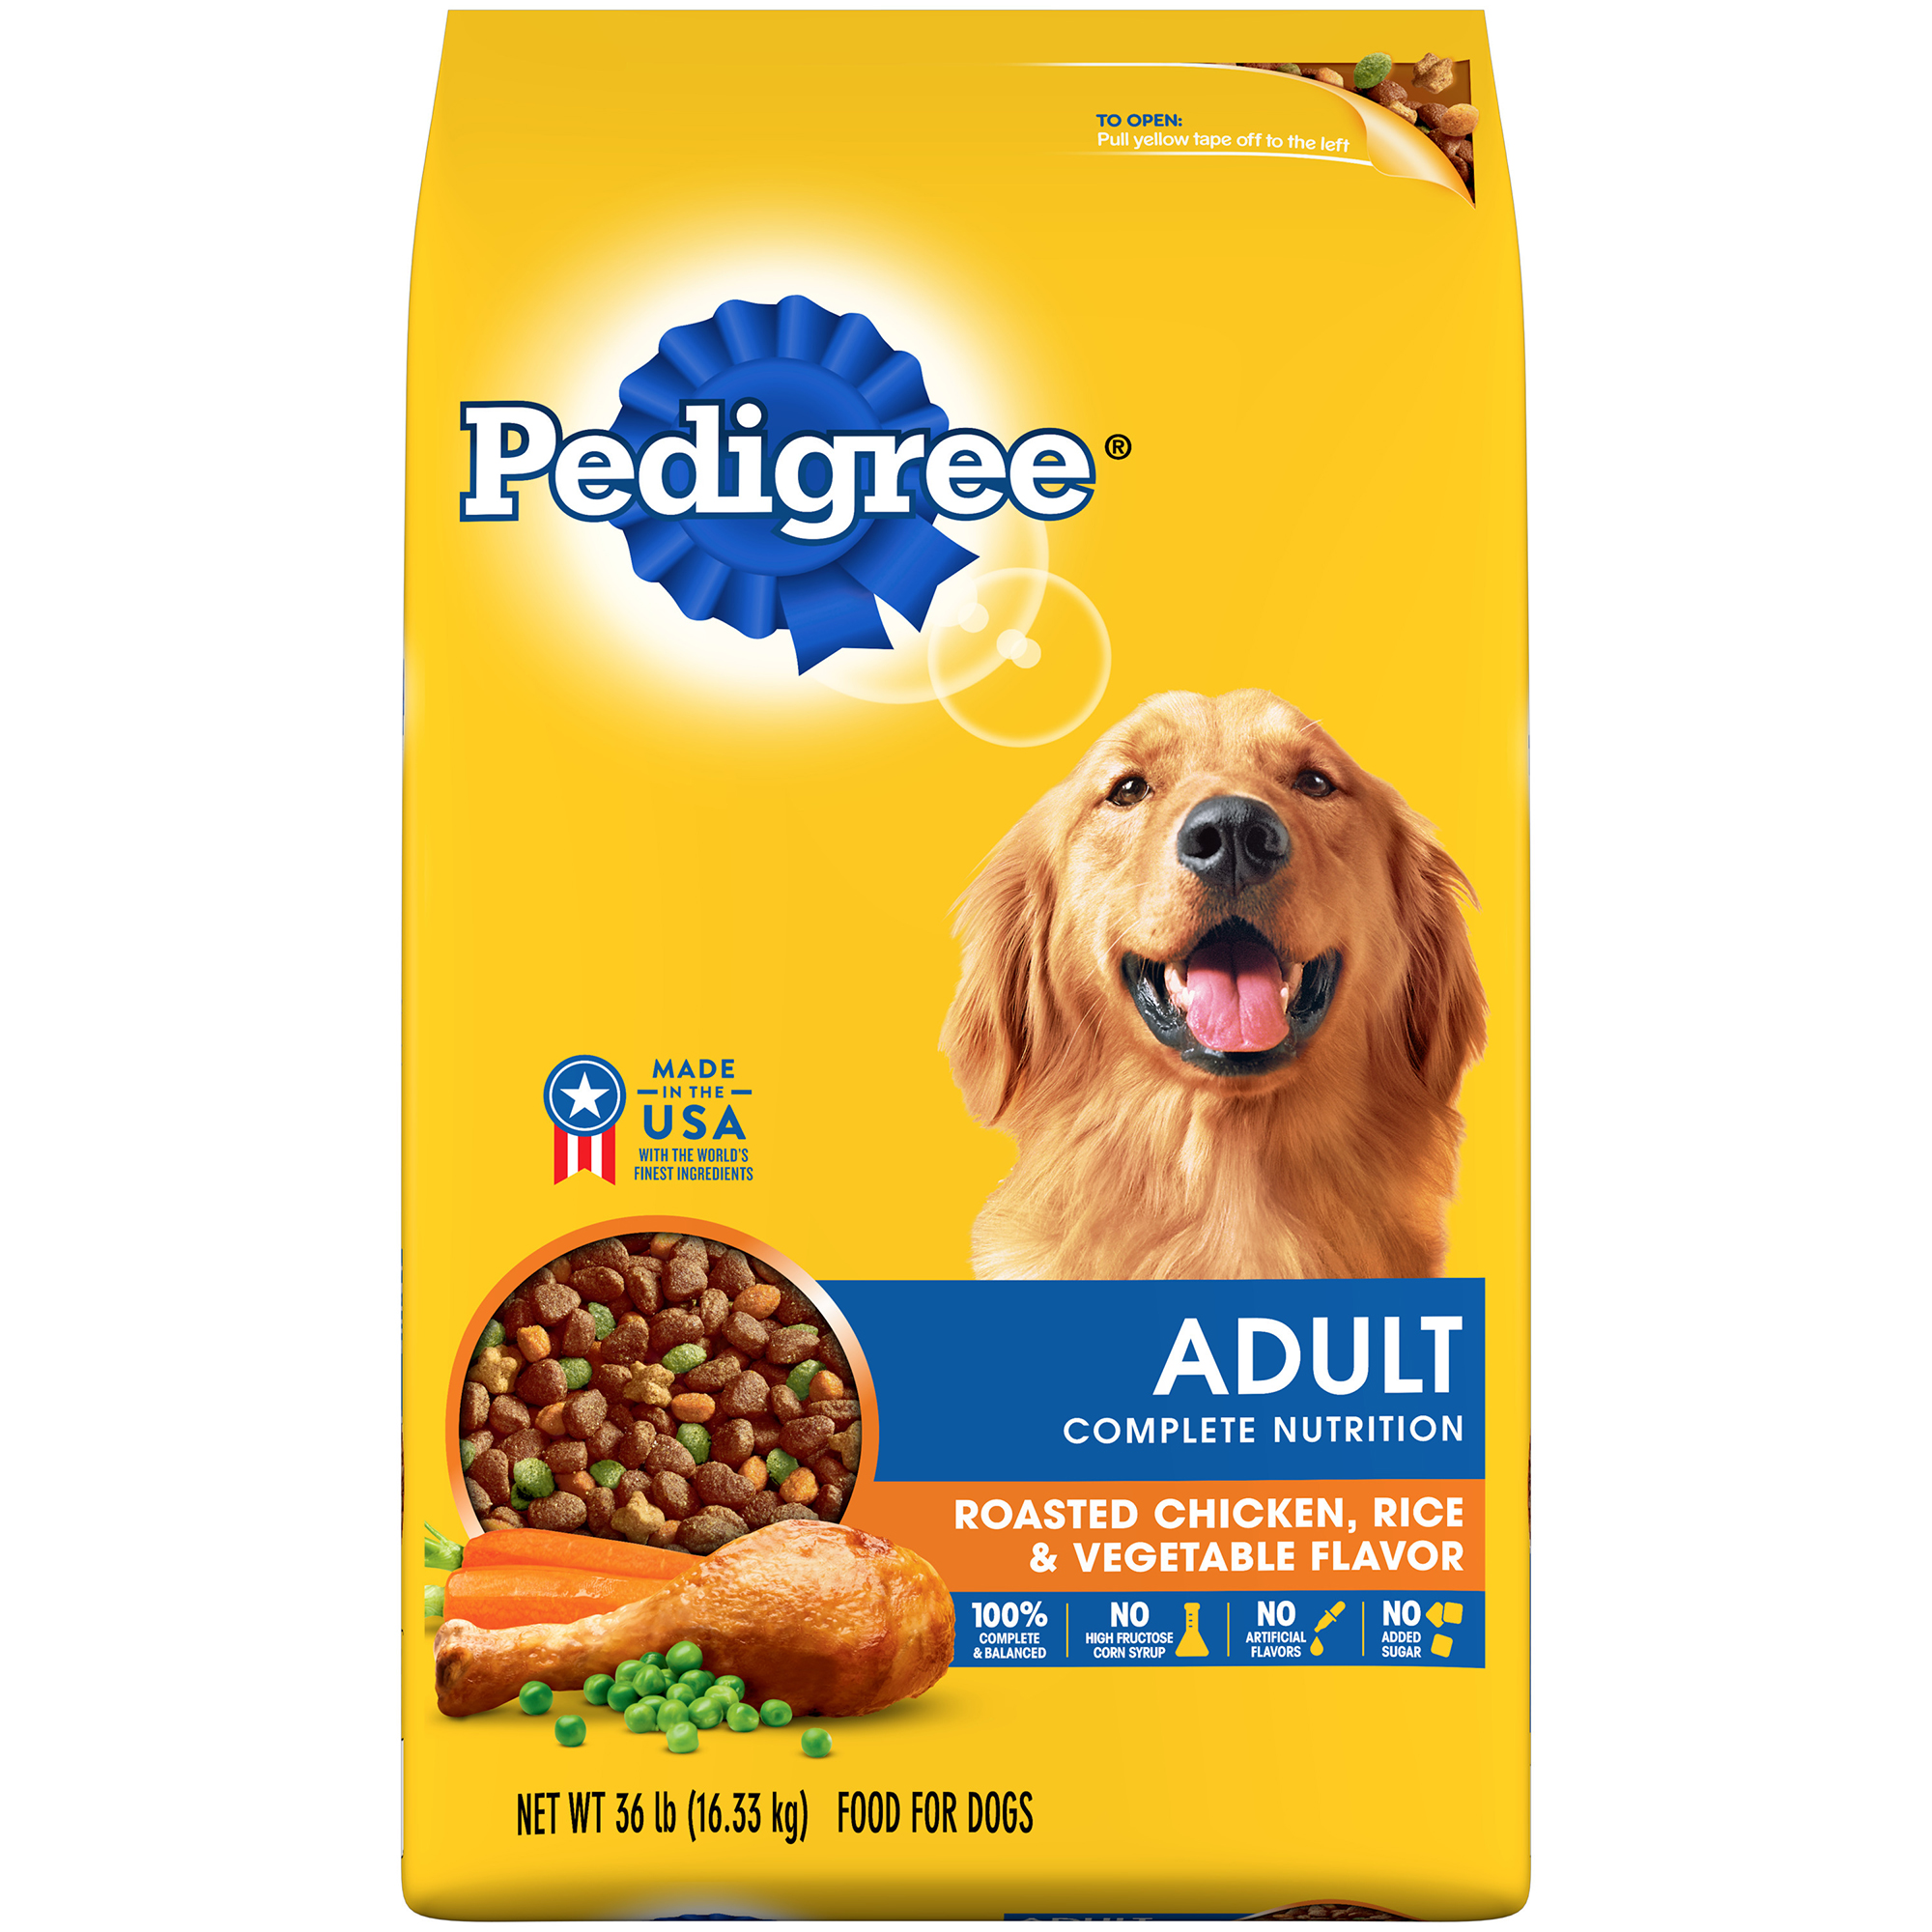 PEDIGREE Adult Complete Nutrition Roasted Chicken, Rice and Vegetable Flavor Dry Dog Food 36 Pounds